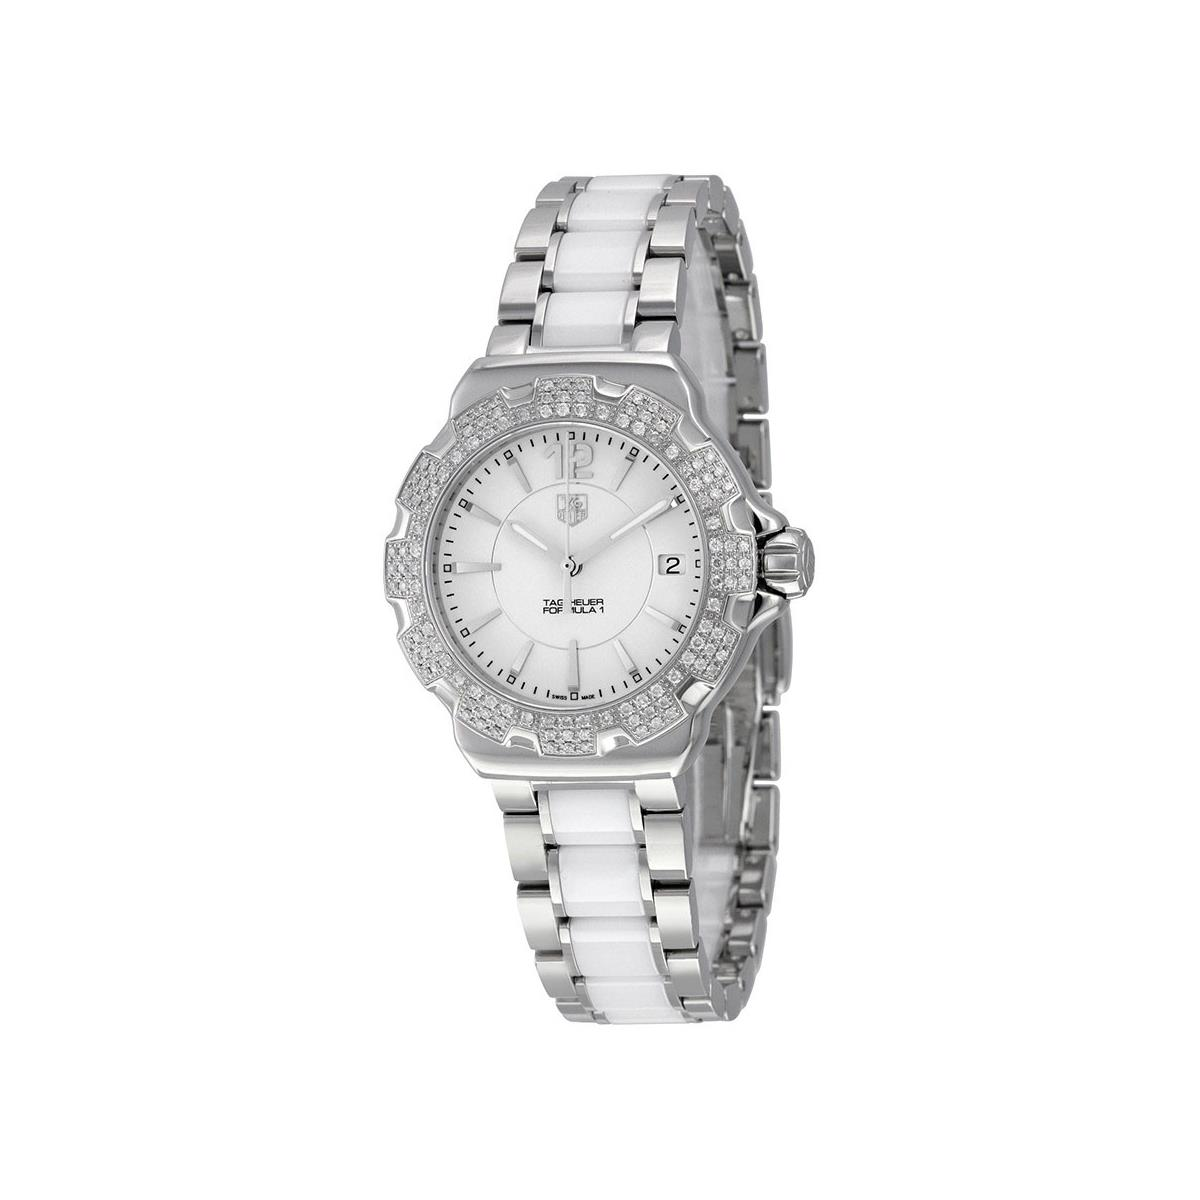 women's tag heuer watches - 800×800